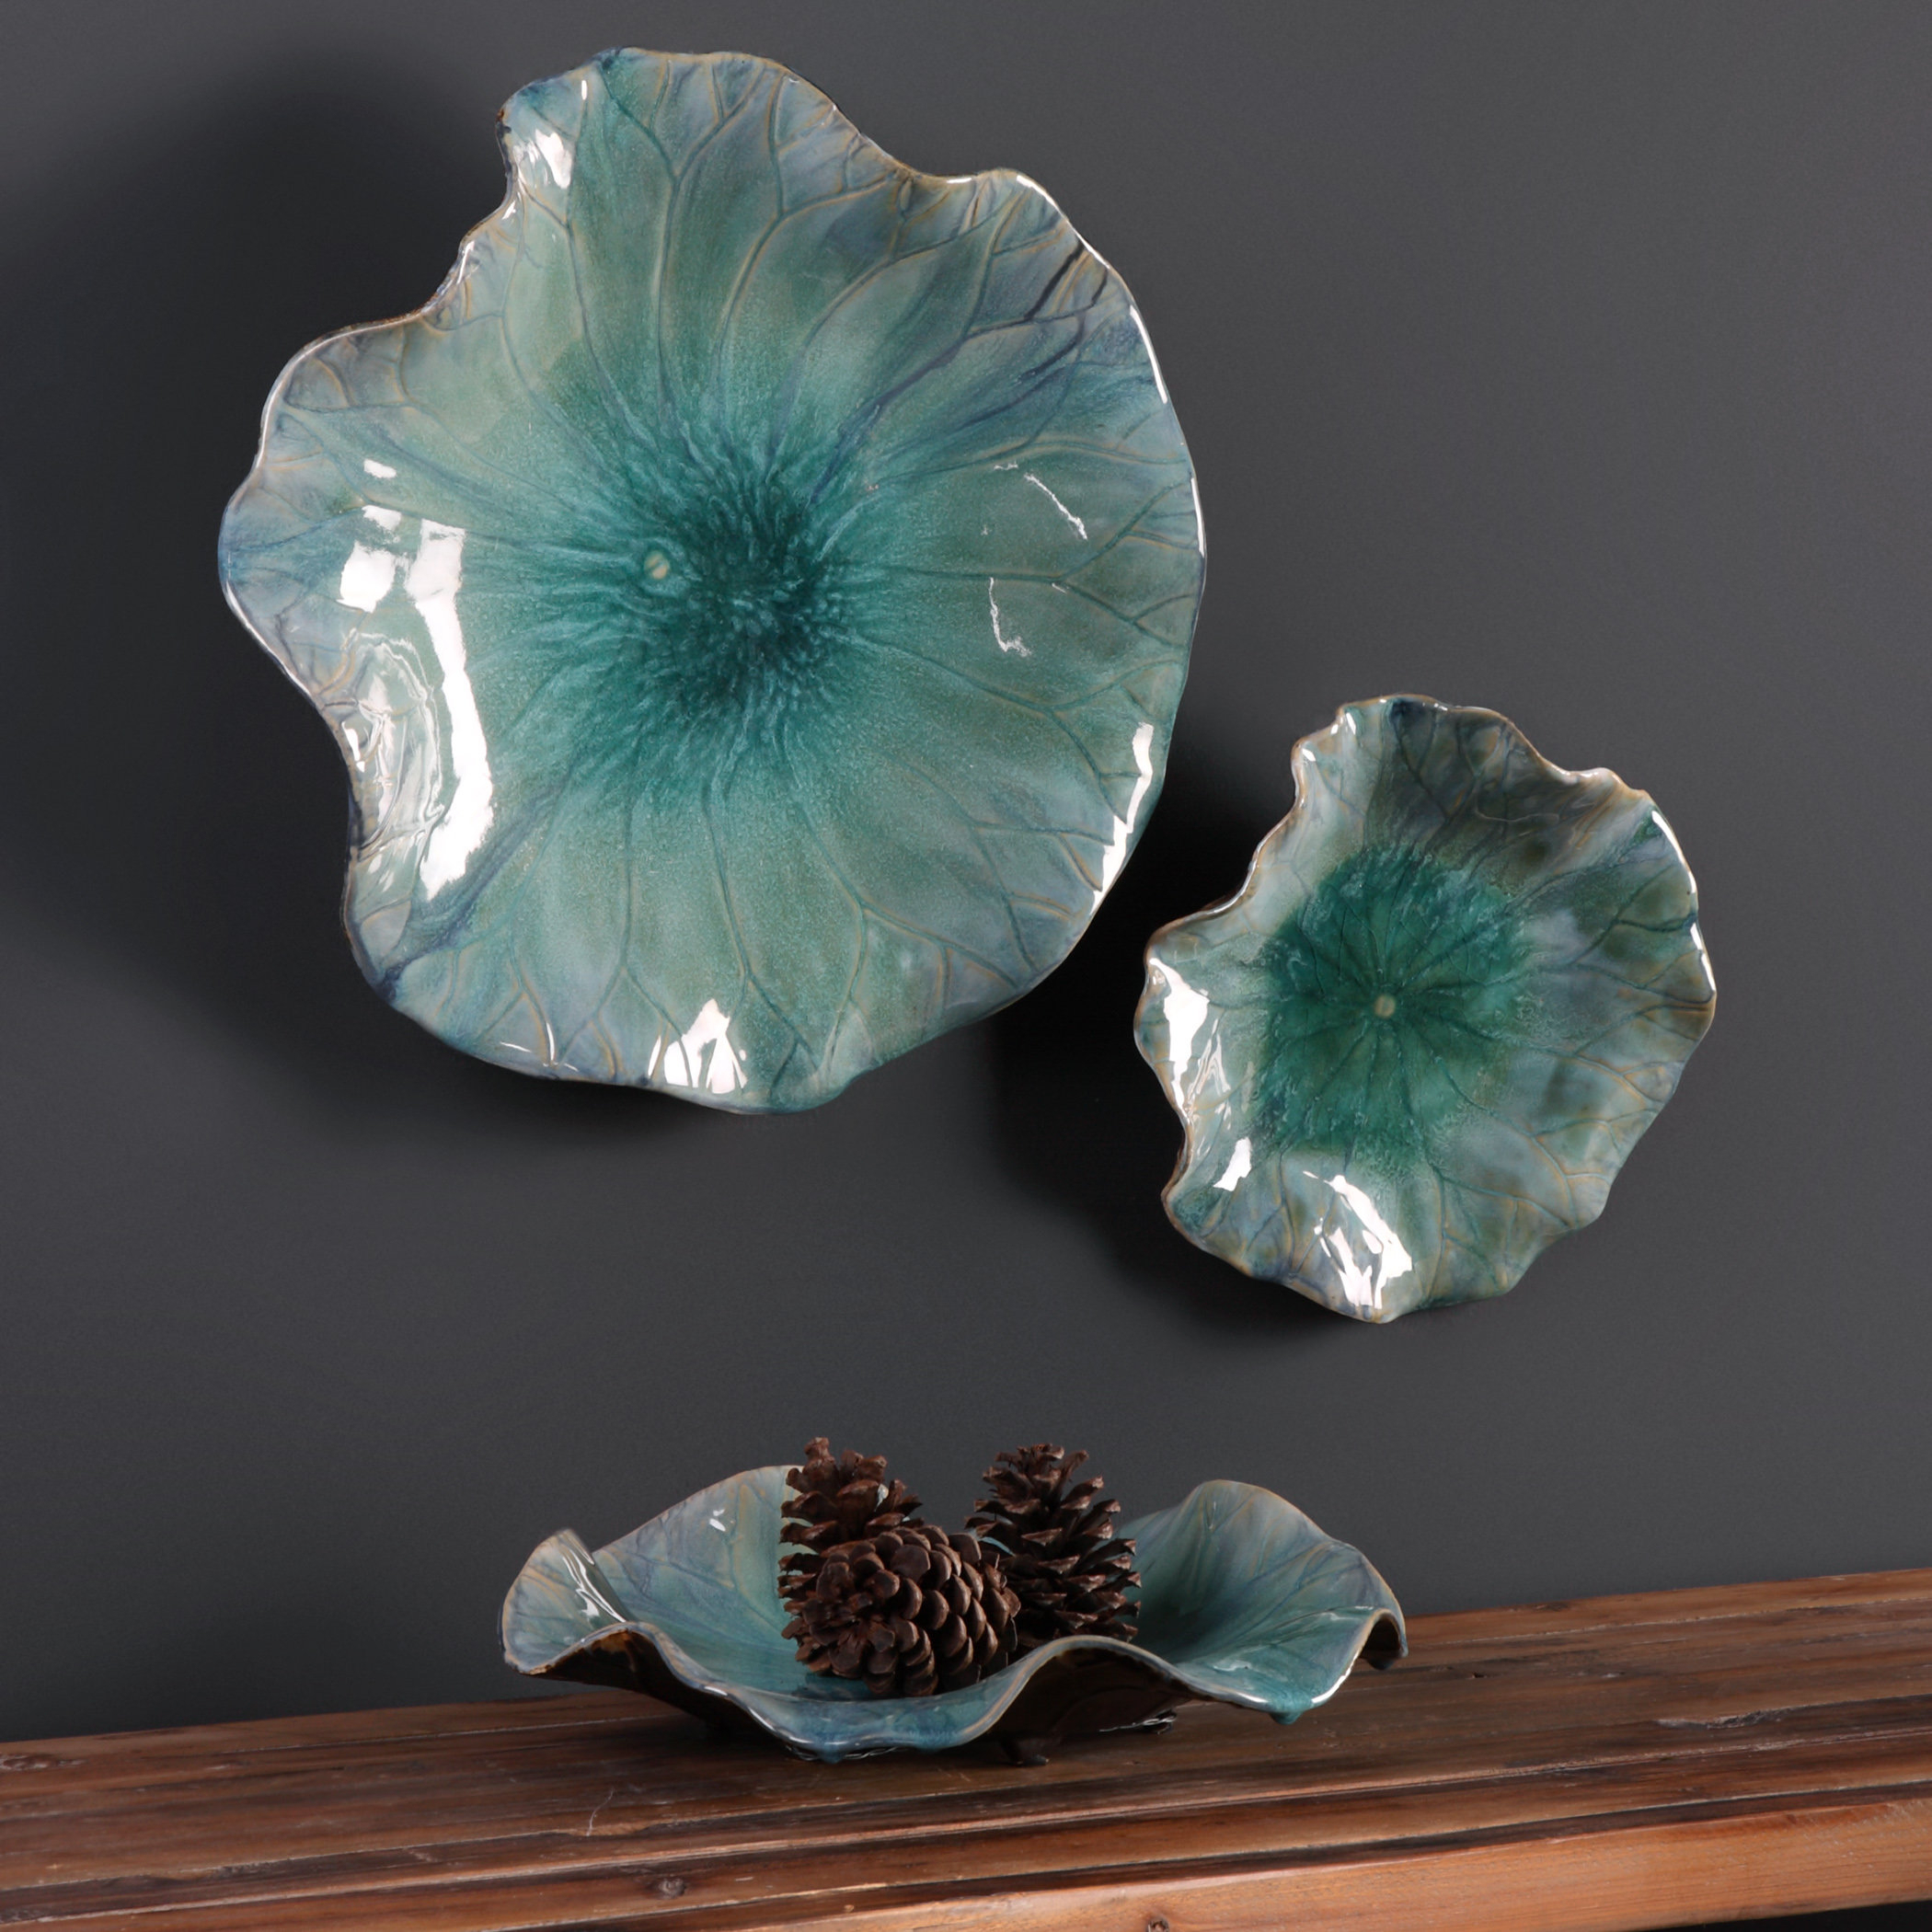 Ceramic Wall Flower | Wayfair in 3 Piece Ceramic Flowers Wall Decor Sets (Image 17 of 30)